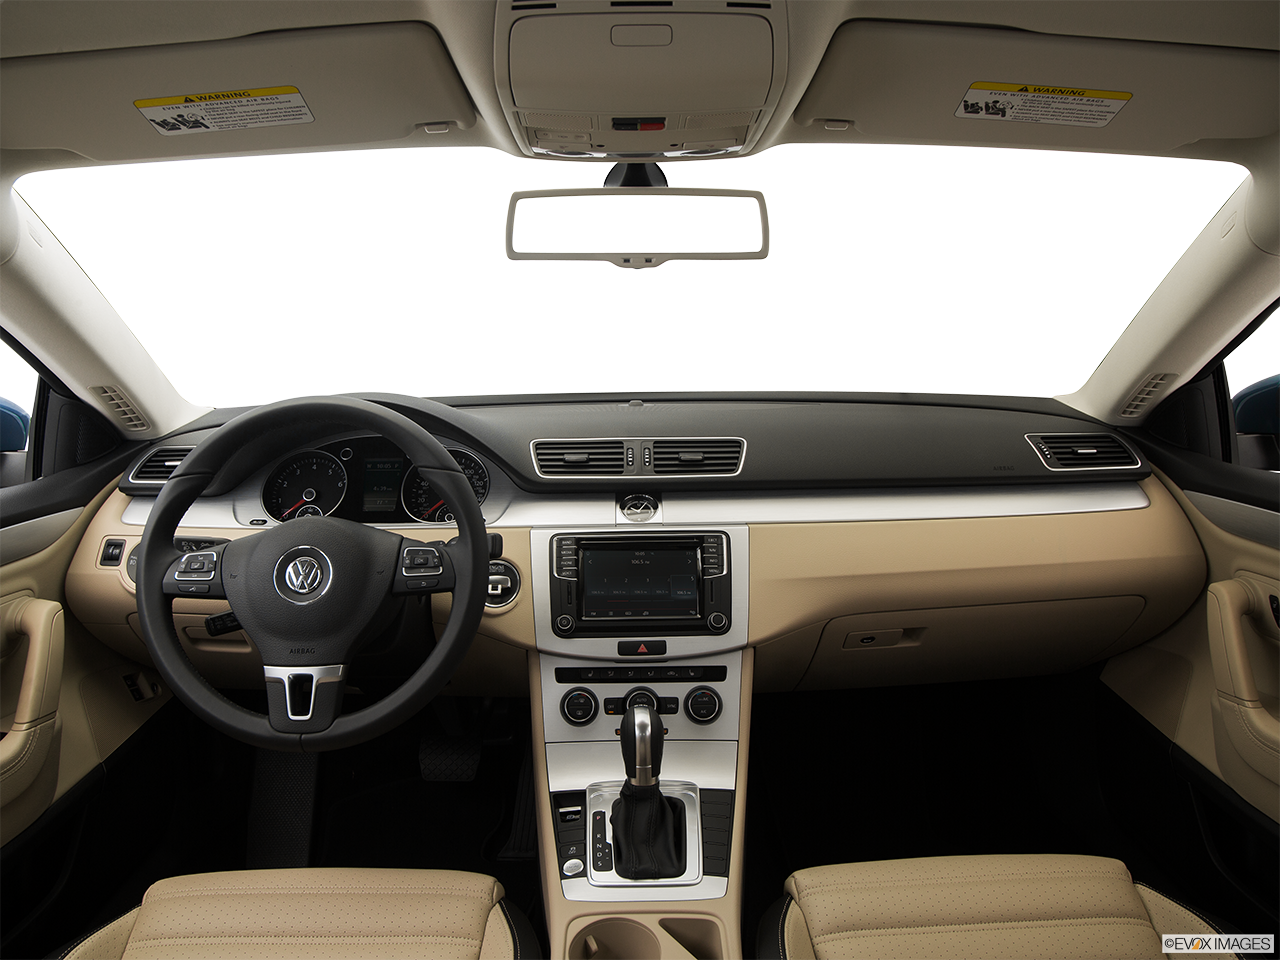 2017 Volkswagen Cc Dealer Serving San Diego Herman Cook Volkswagen